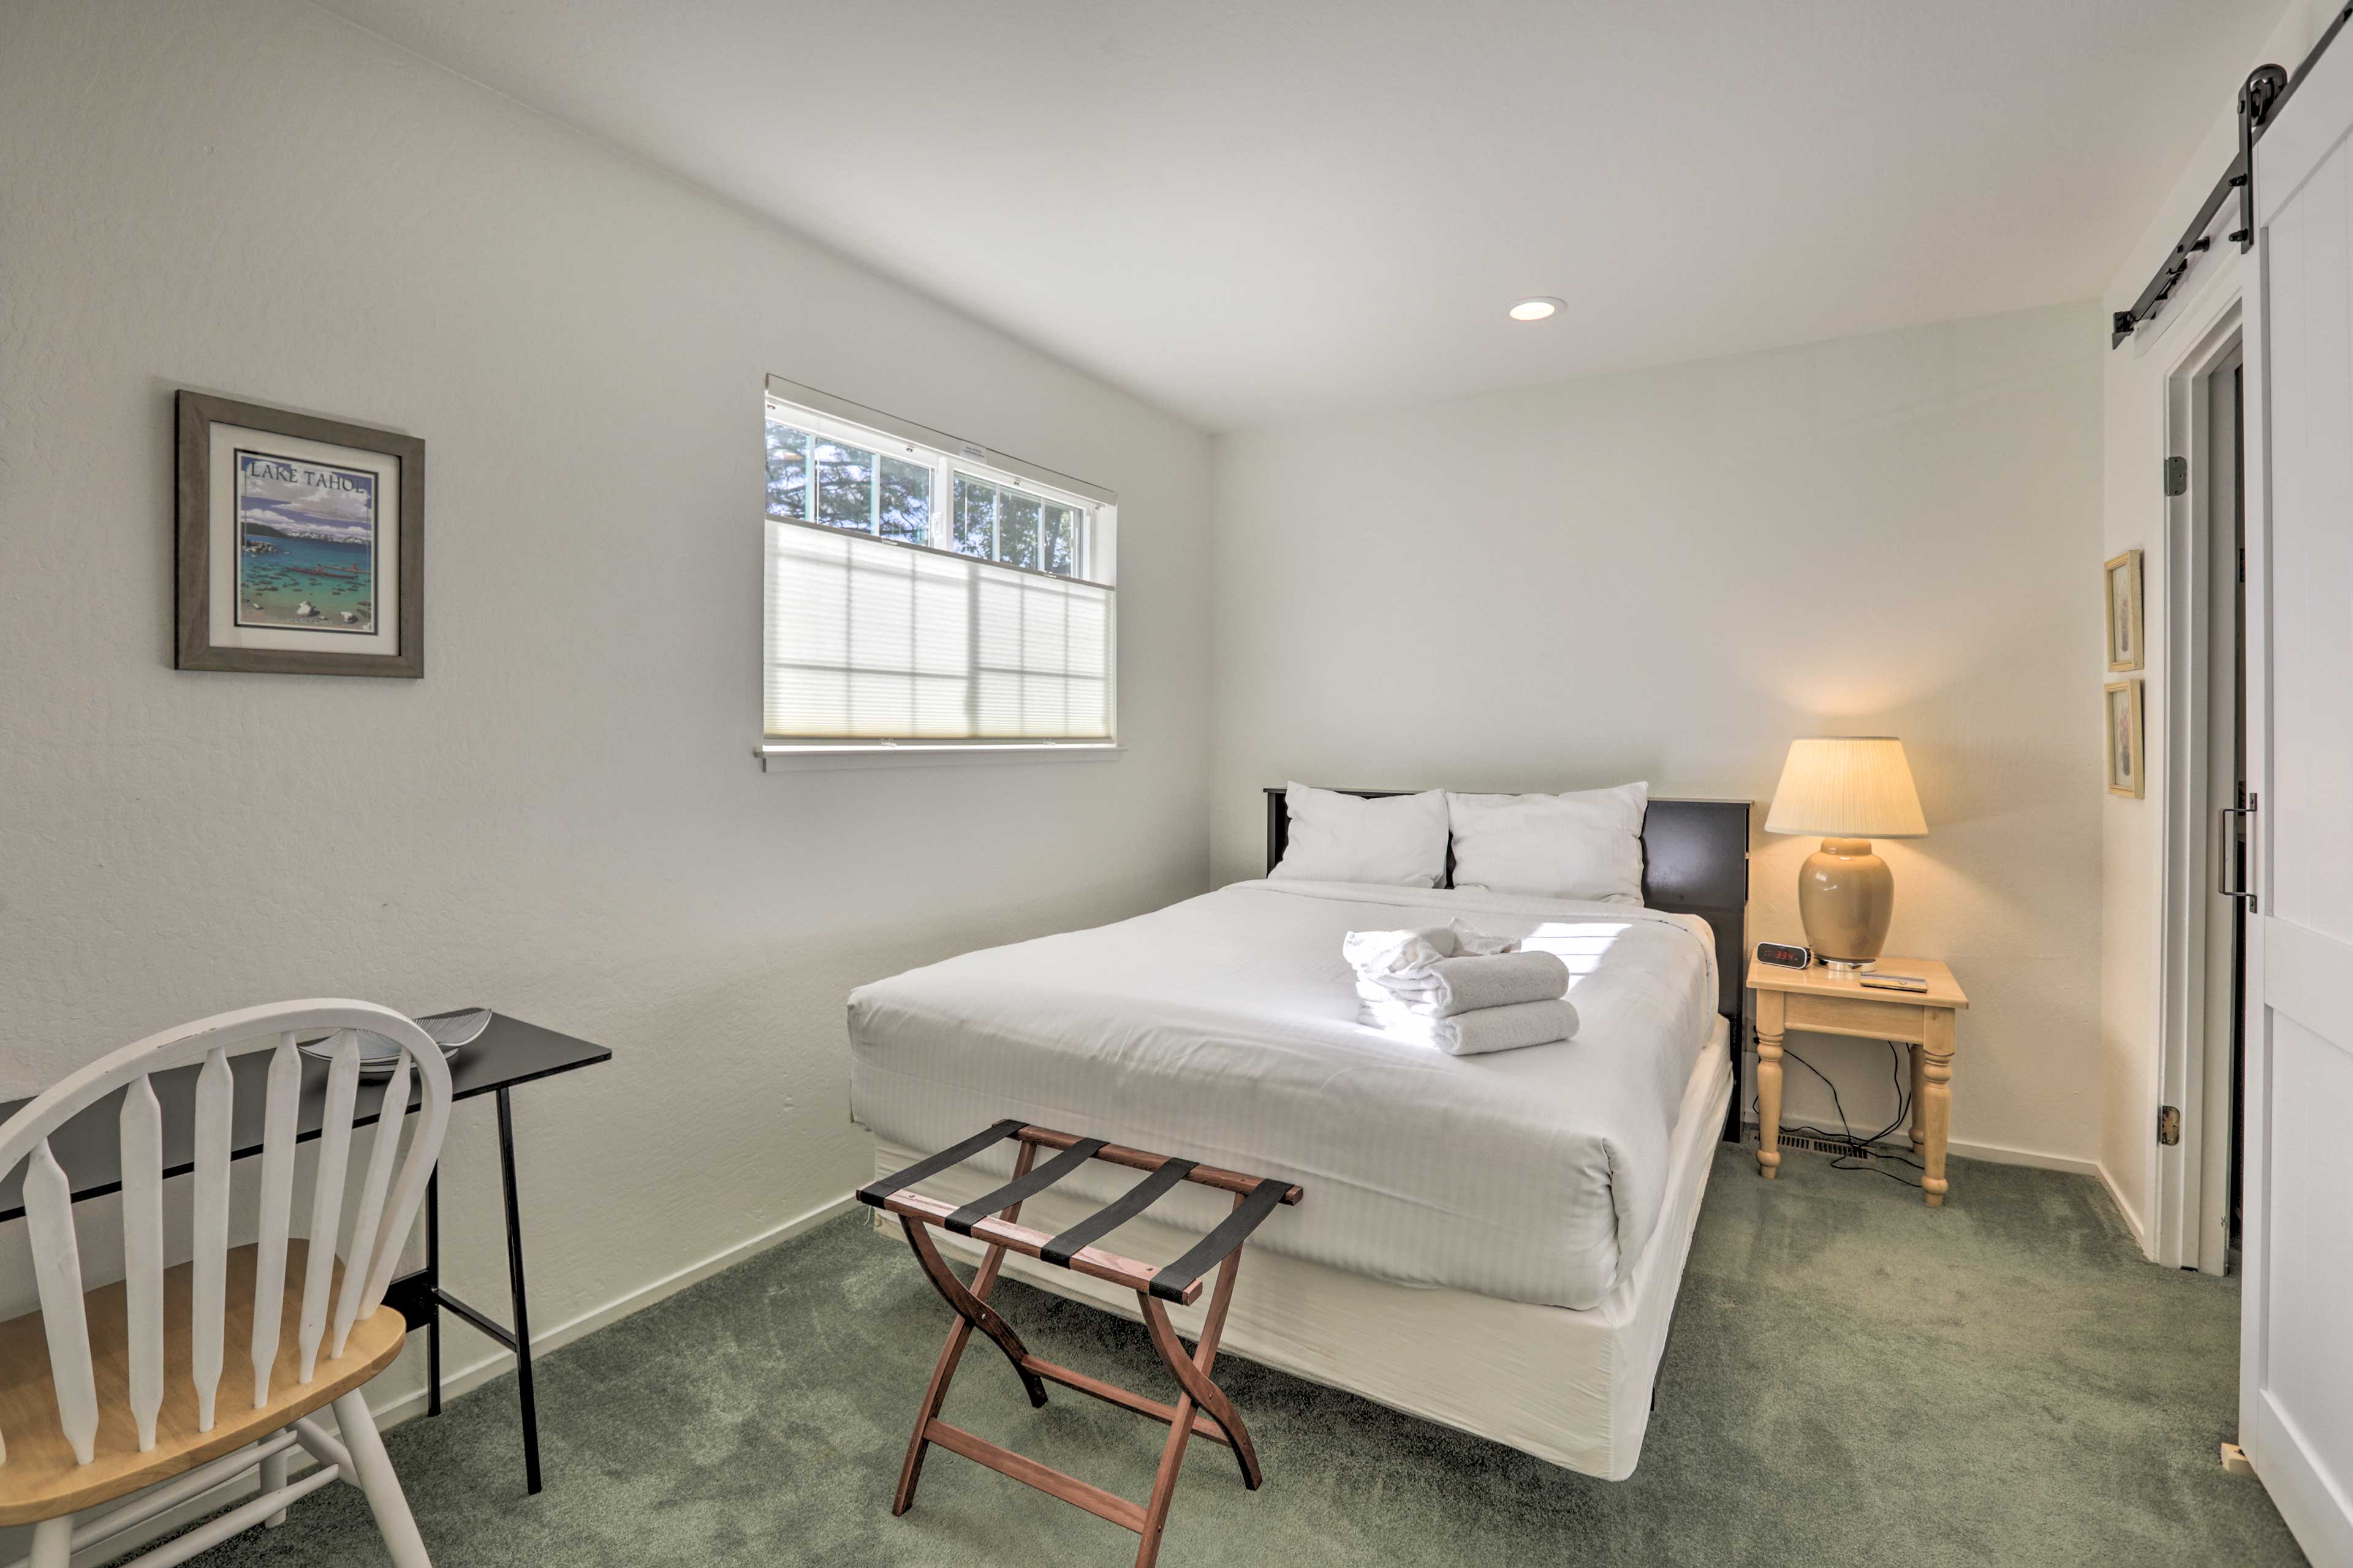 Curl up in this full bed for a good night's rest.